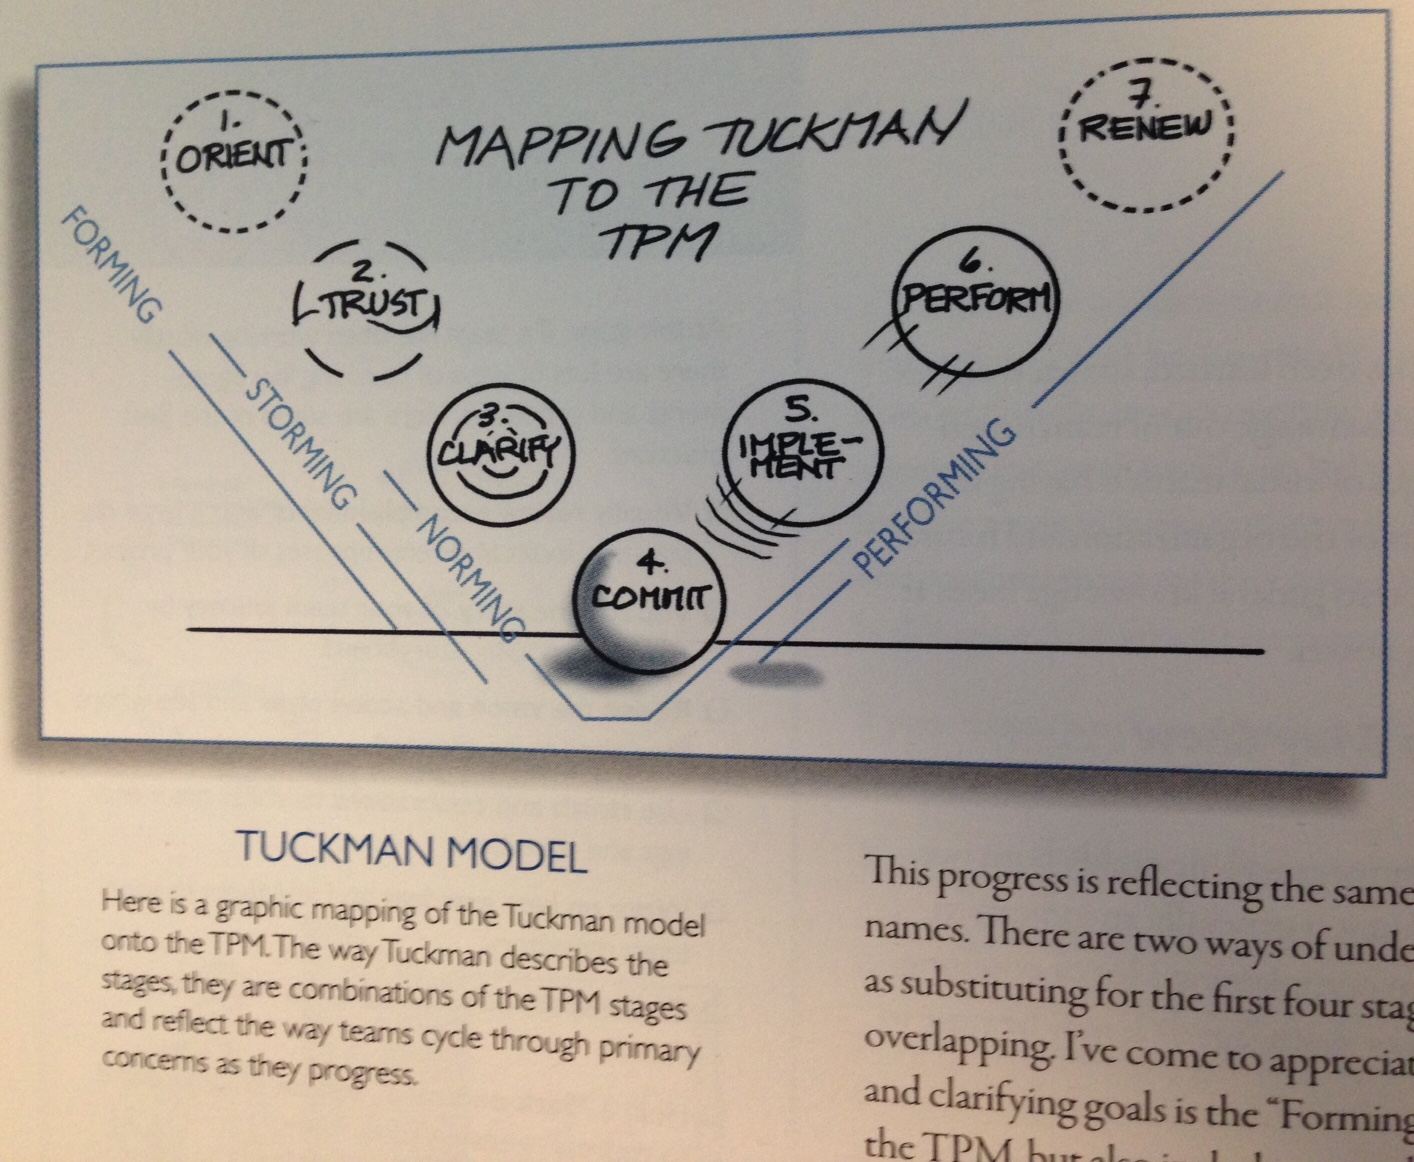 tuckmans model in understanding team effectiveness essay Development of small teams are of vital importance for the success of any project read on for an overview of tuckman's theory of team development, a popular theoretical model on how teams develop over time.